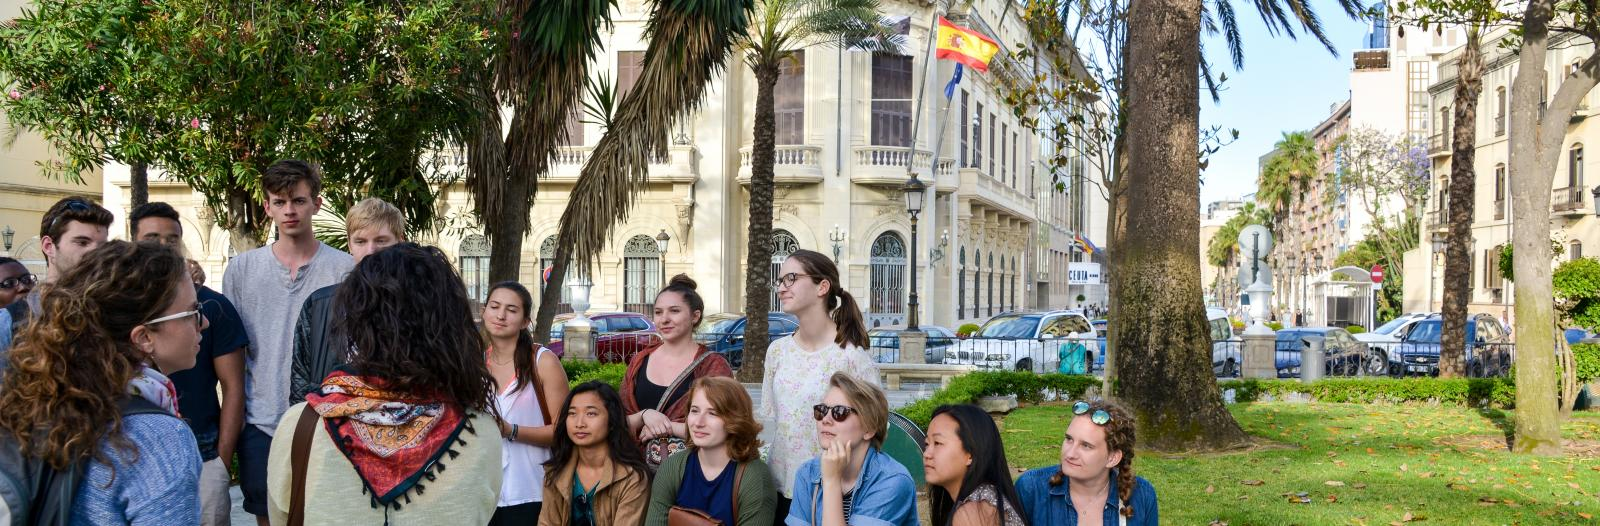 Global Learning Program visits with non-governmental organization in Ceuta, Spain